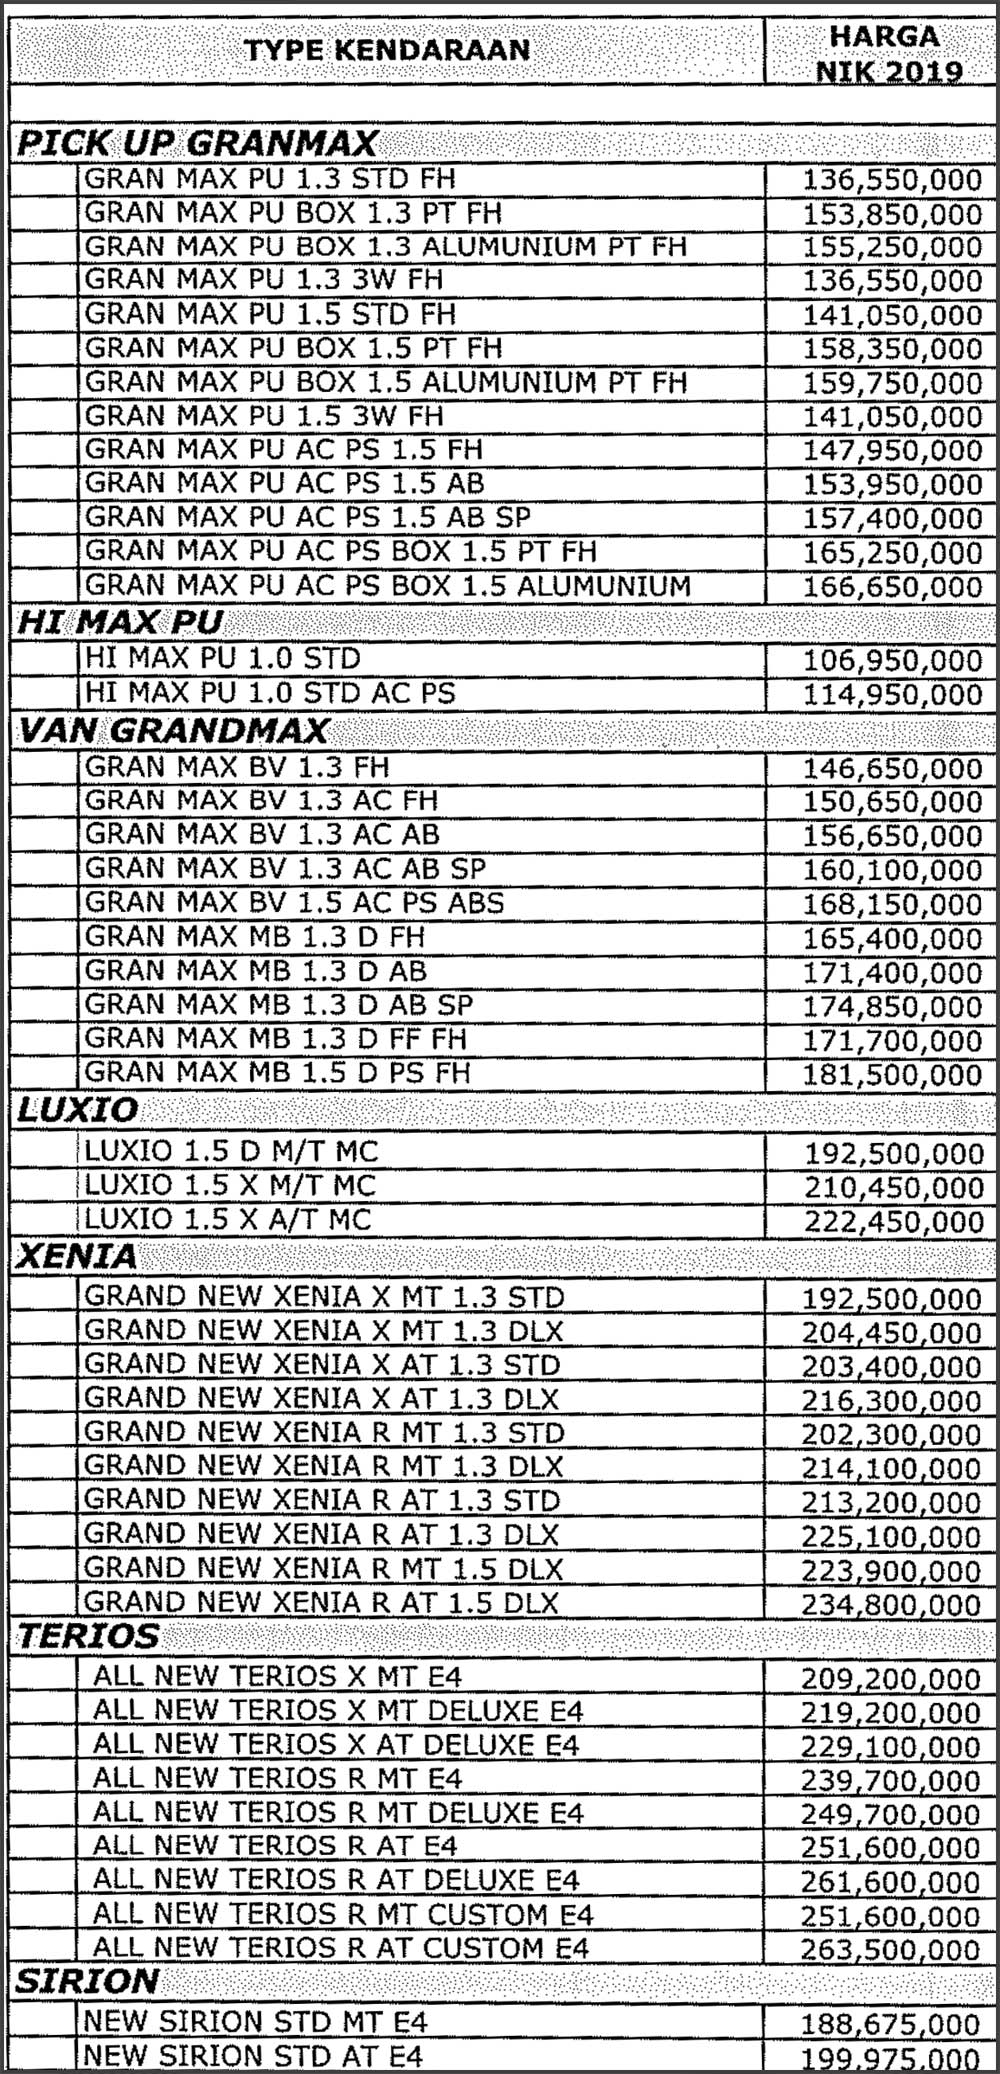 Harga Mobil 1 By Sika